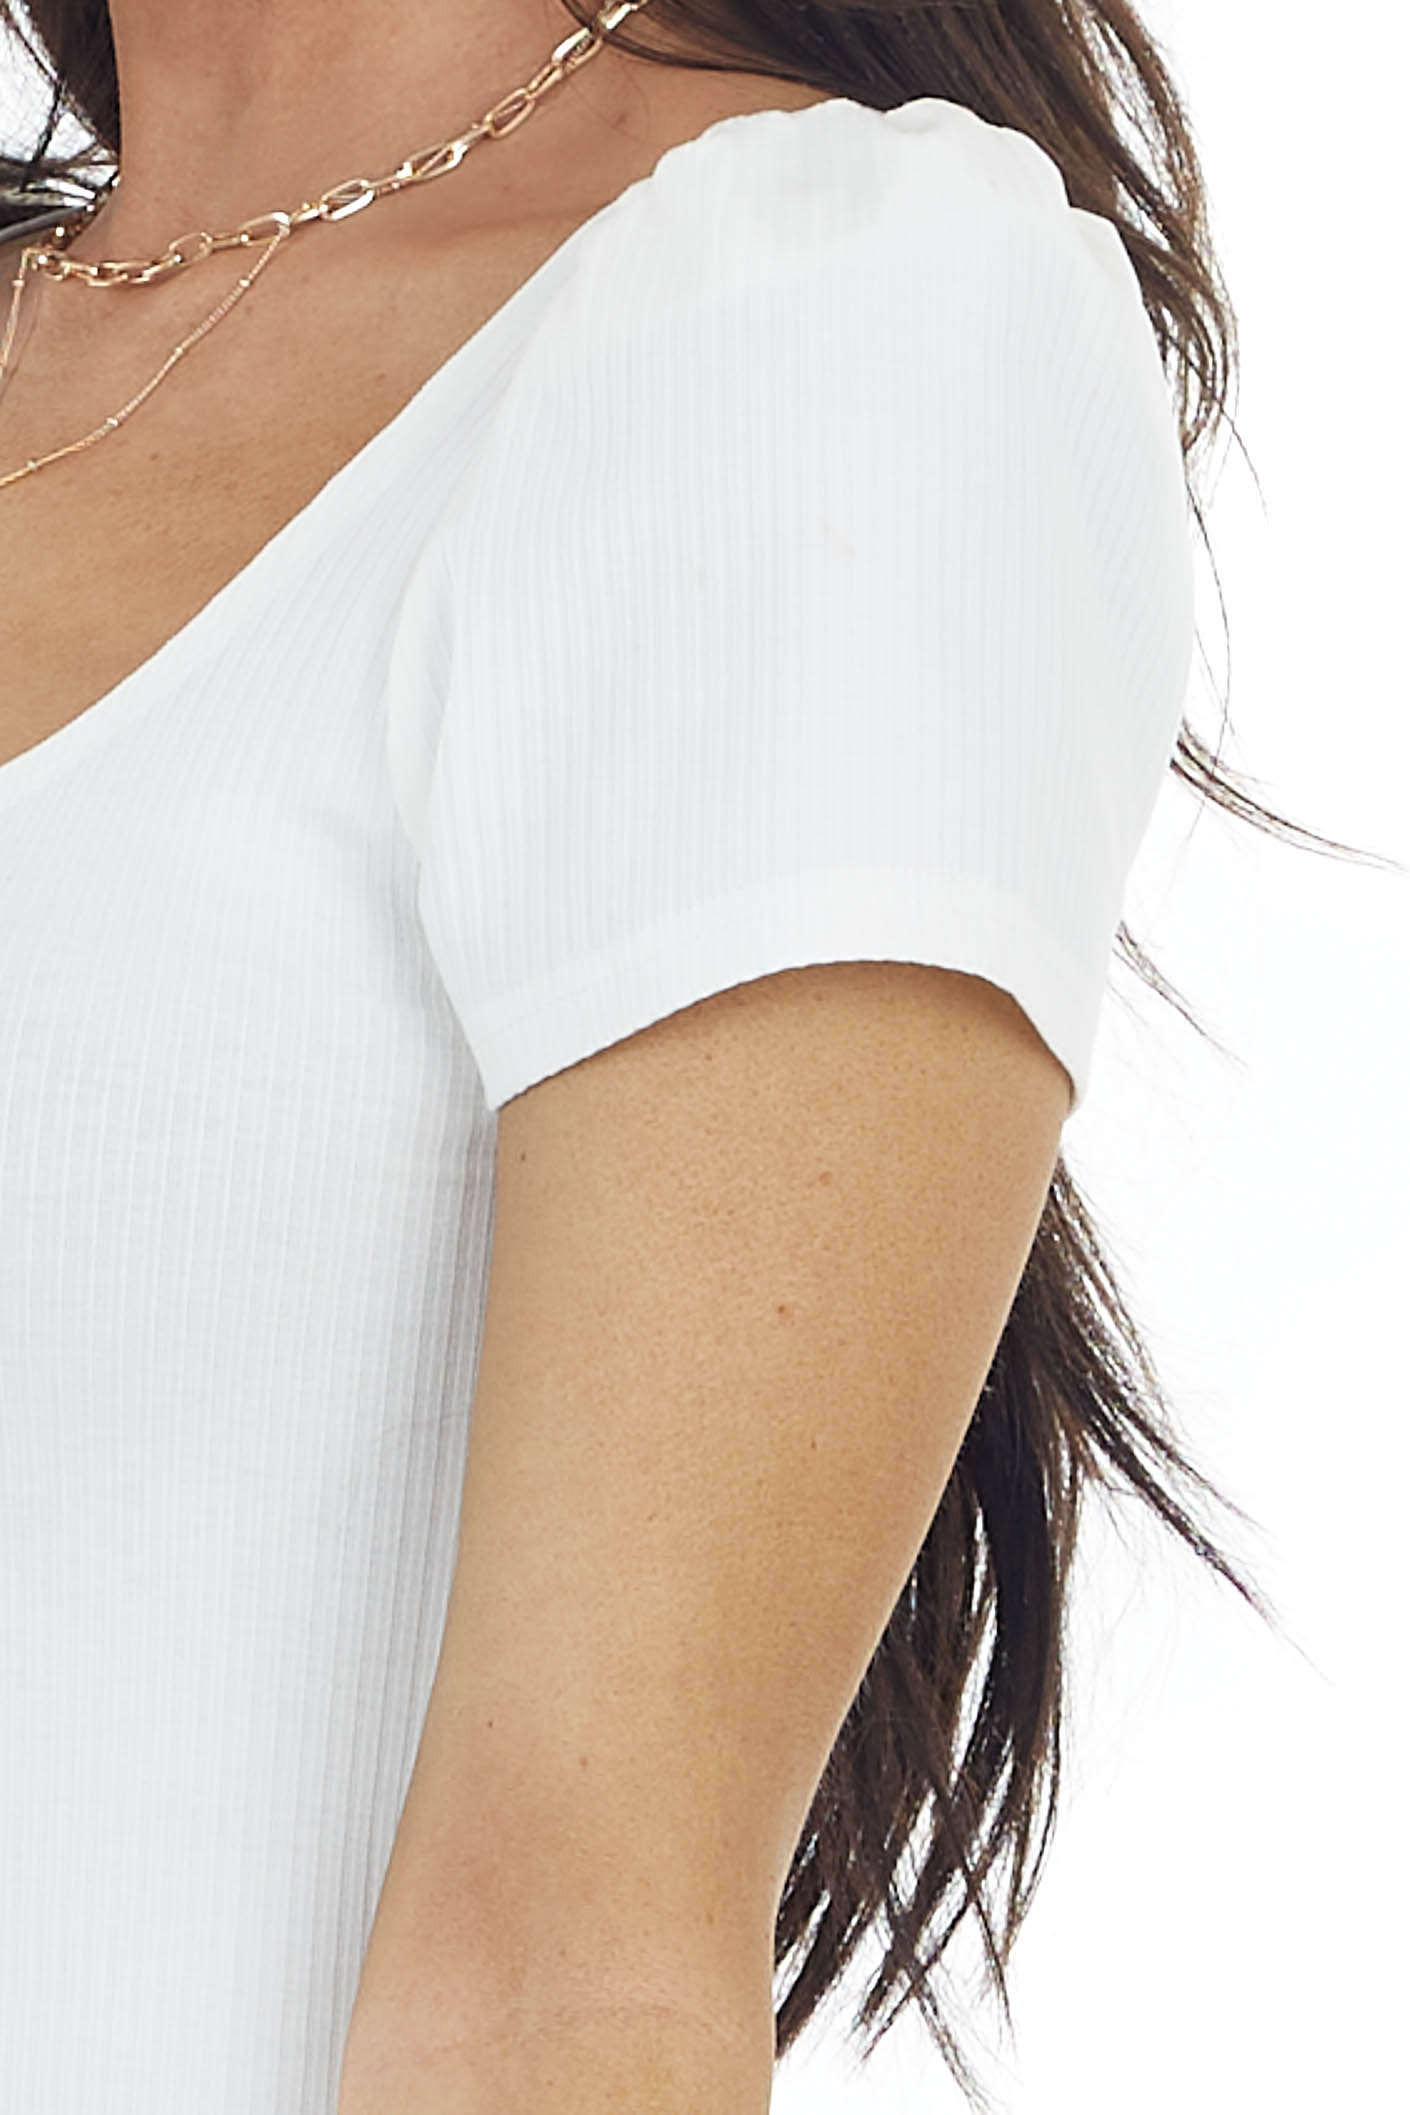 Cream Square Neck Ribbed Knit Top with Short Puff Sleeves